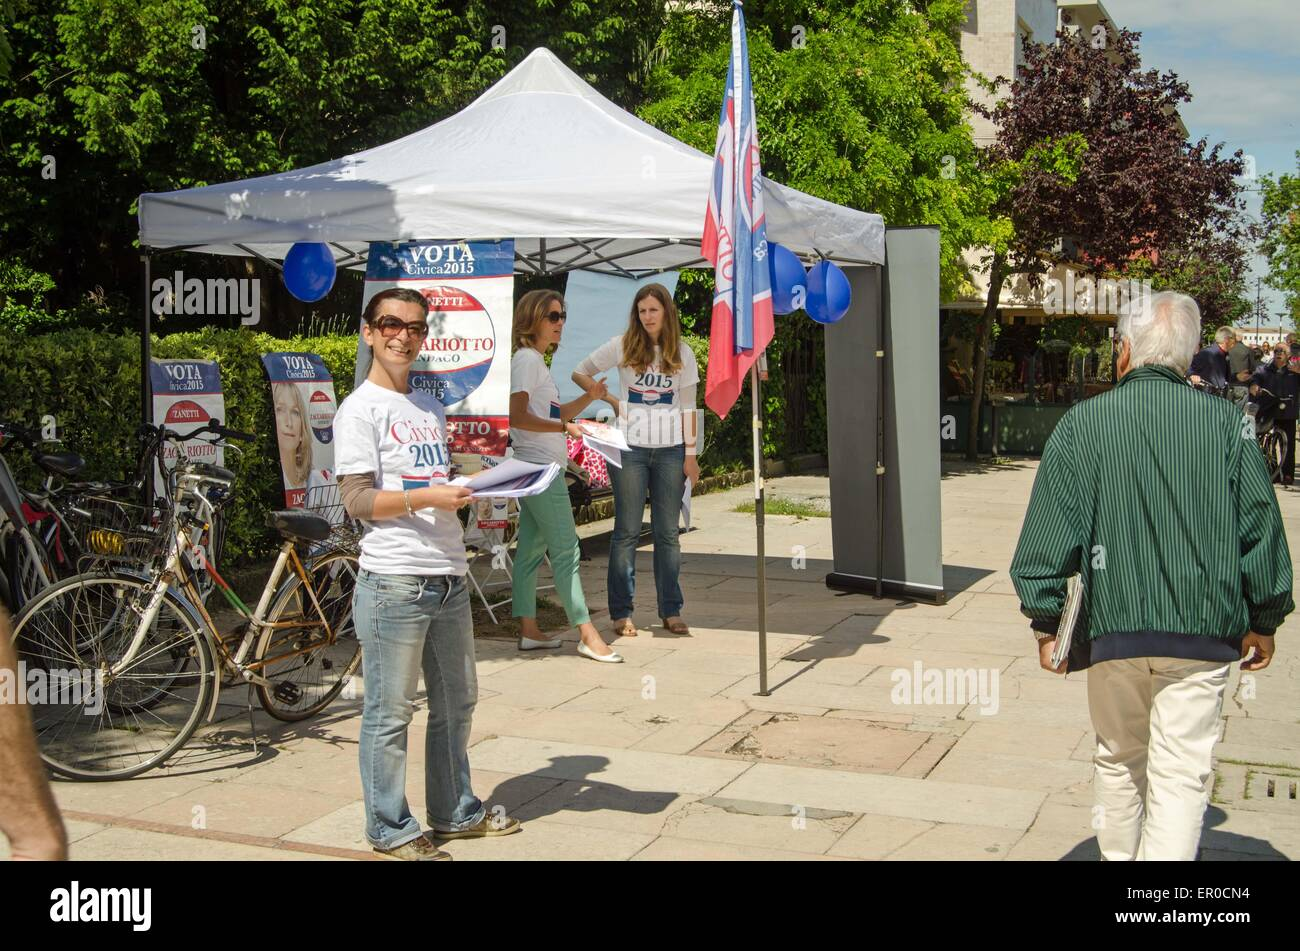 VENICE, ITALY - MAY 24, 2015:  A smiling supporter of the mayoral candidate Francesca Zaccariotto handing out leaflets - Stock Image